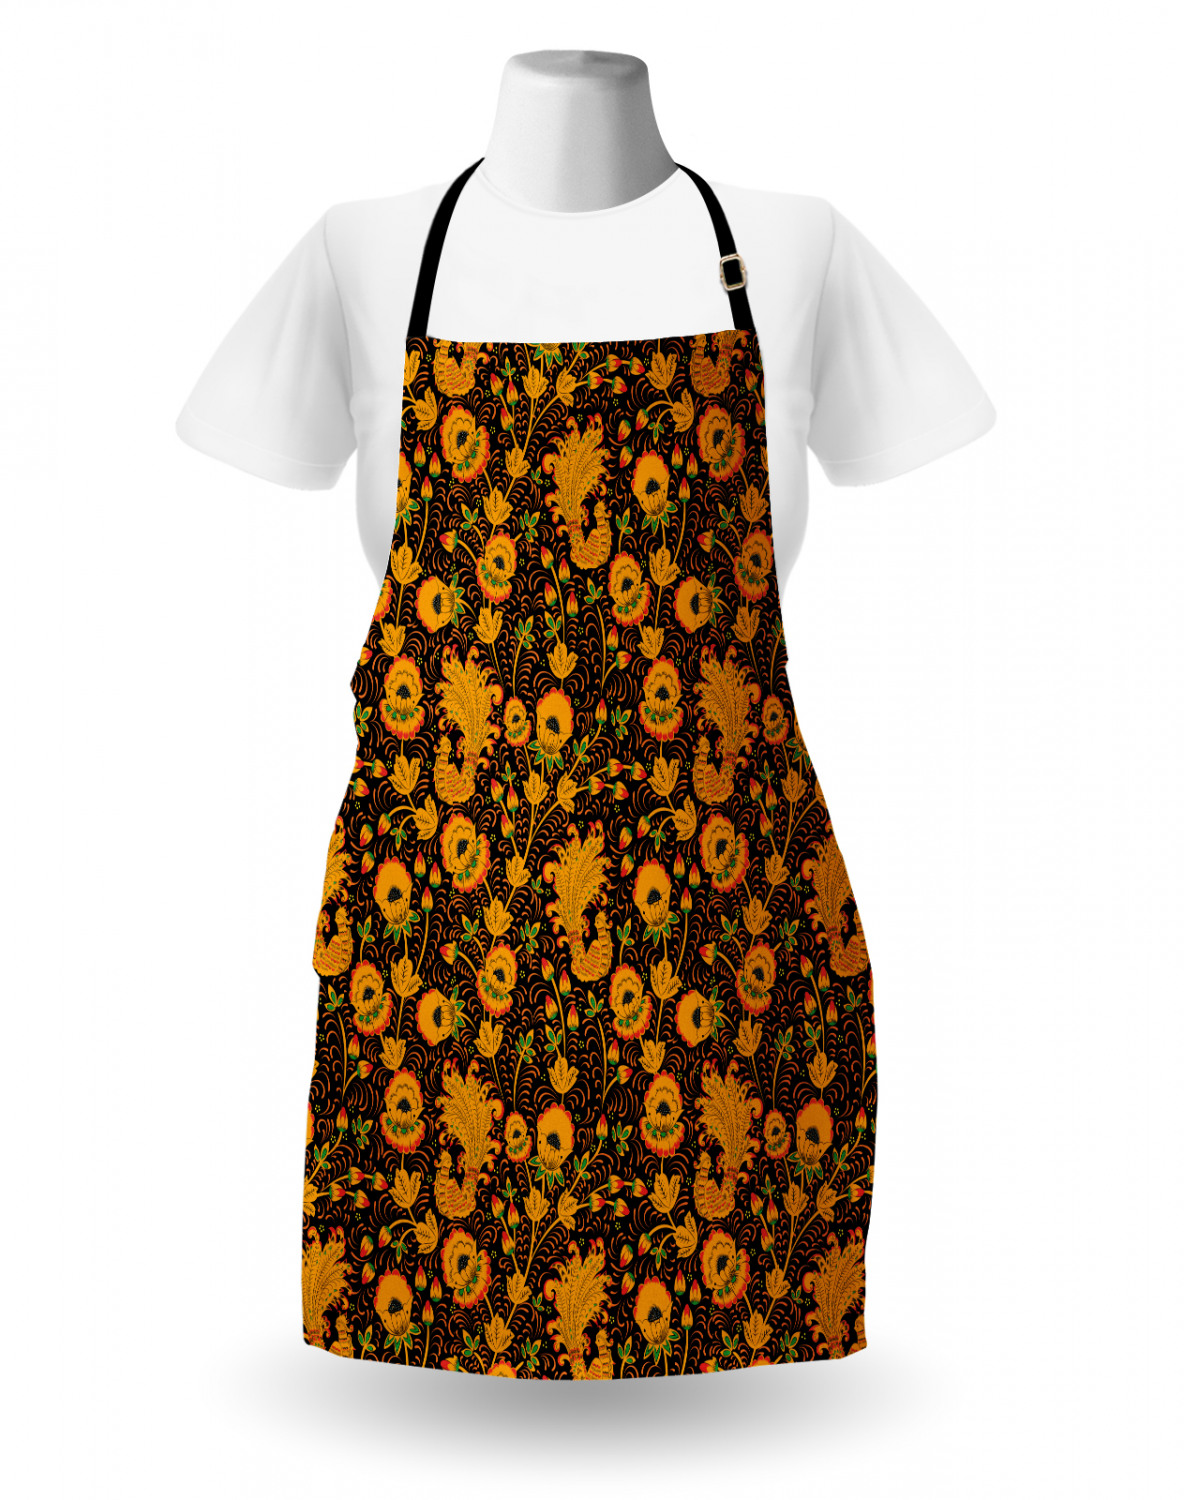 Ambesonne-Outdoor-Use-Apron-with-Adjustable-Neck-Strap-for-Gardening-and-Cooking miniatura 53